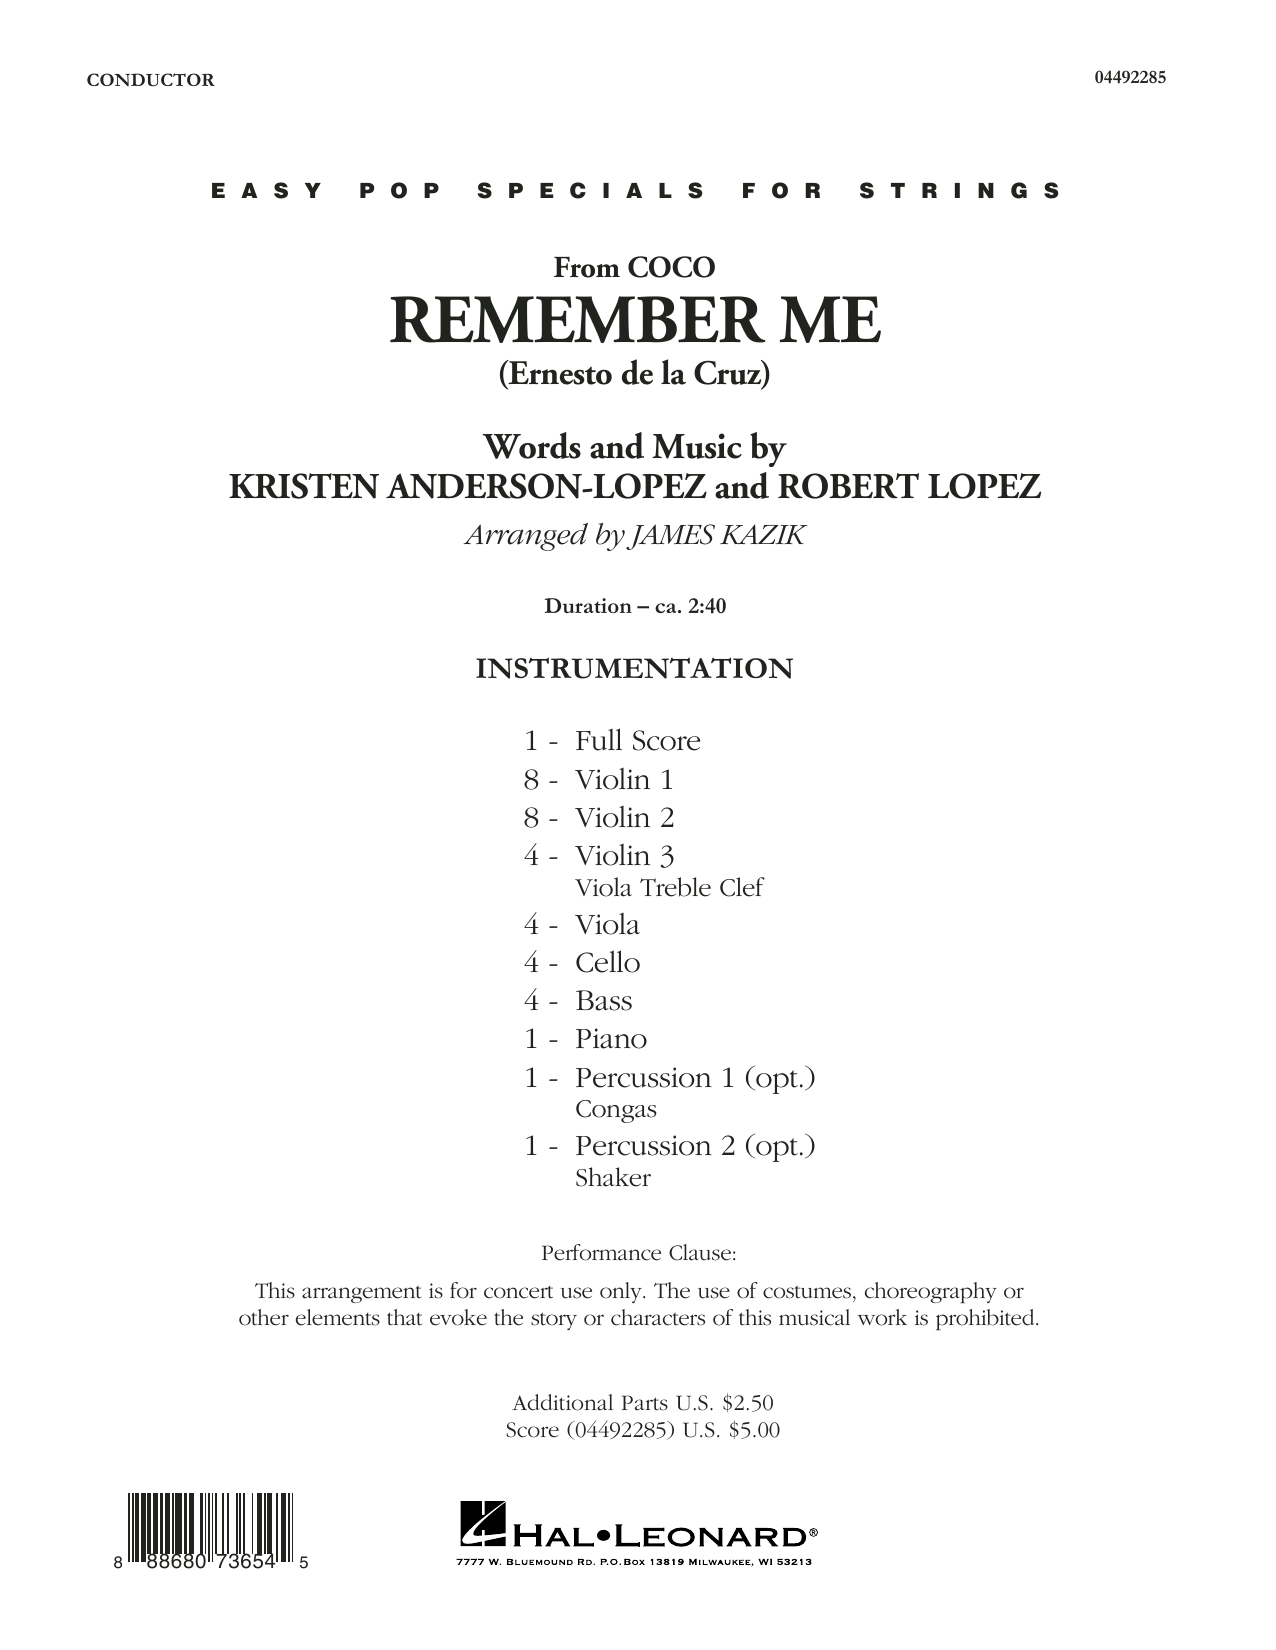 Kristen Anderson-Lopez & Robert Lopez Remember Me (from Coco) (arr. James Kazik) - Conductor Score (Full Score) sheet music preview music notes and score for Orchestra including 6 page(s)